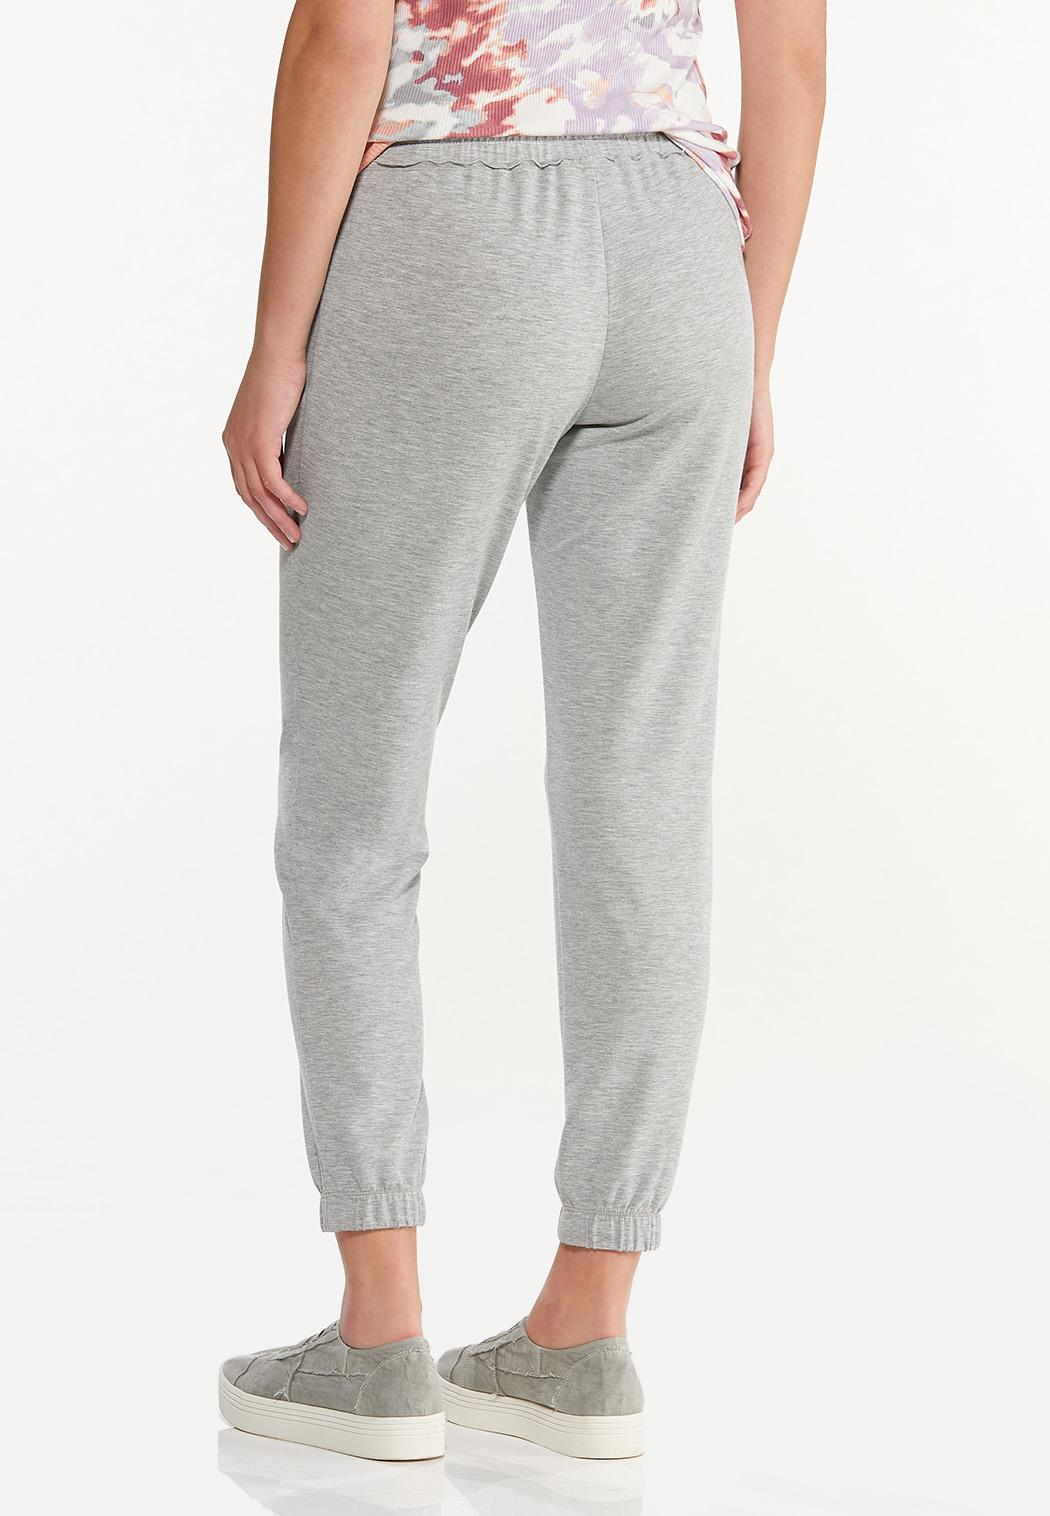 French Terry Joggers (Item #44571356)